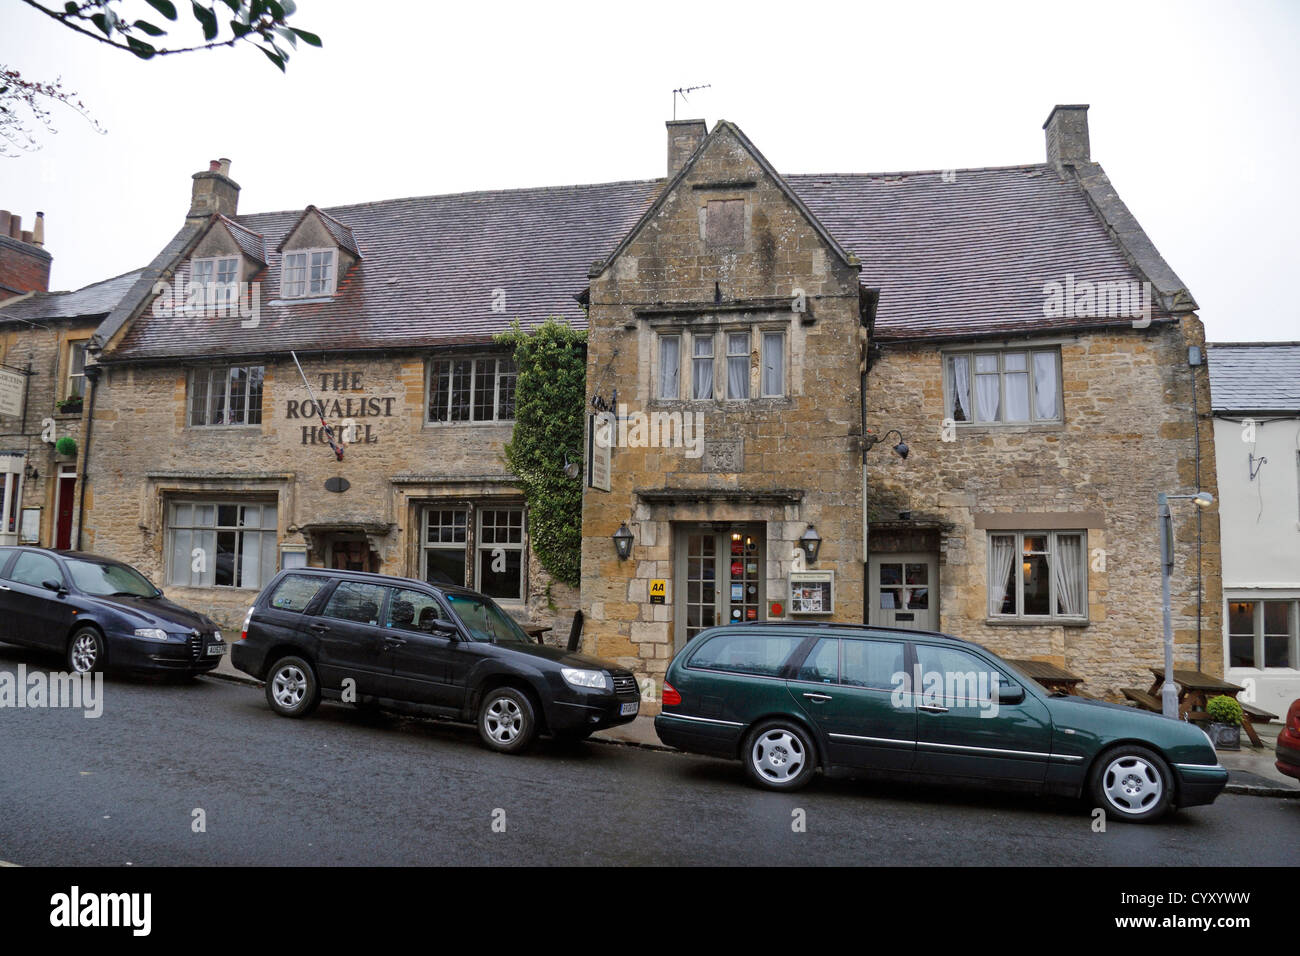 The Royalist Hotel in Stow on the Wold, Gloucestershire, England Stock Photo